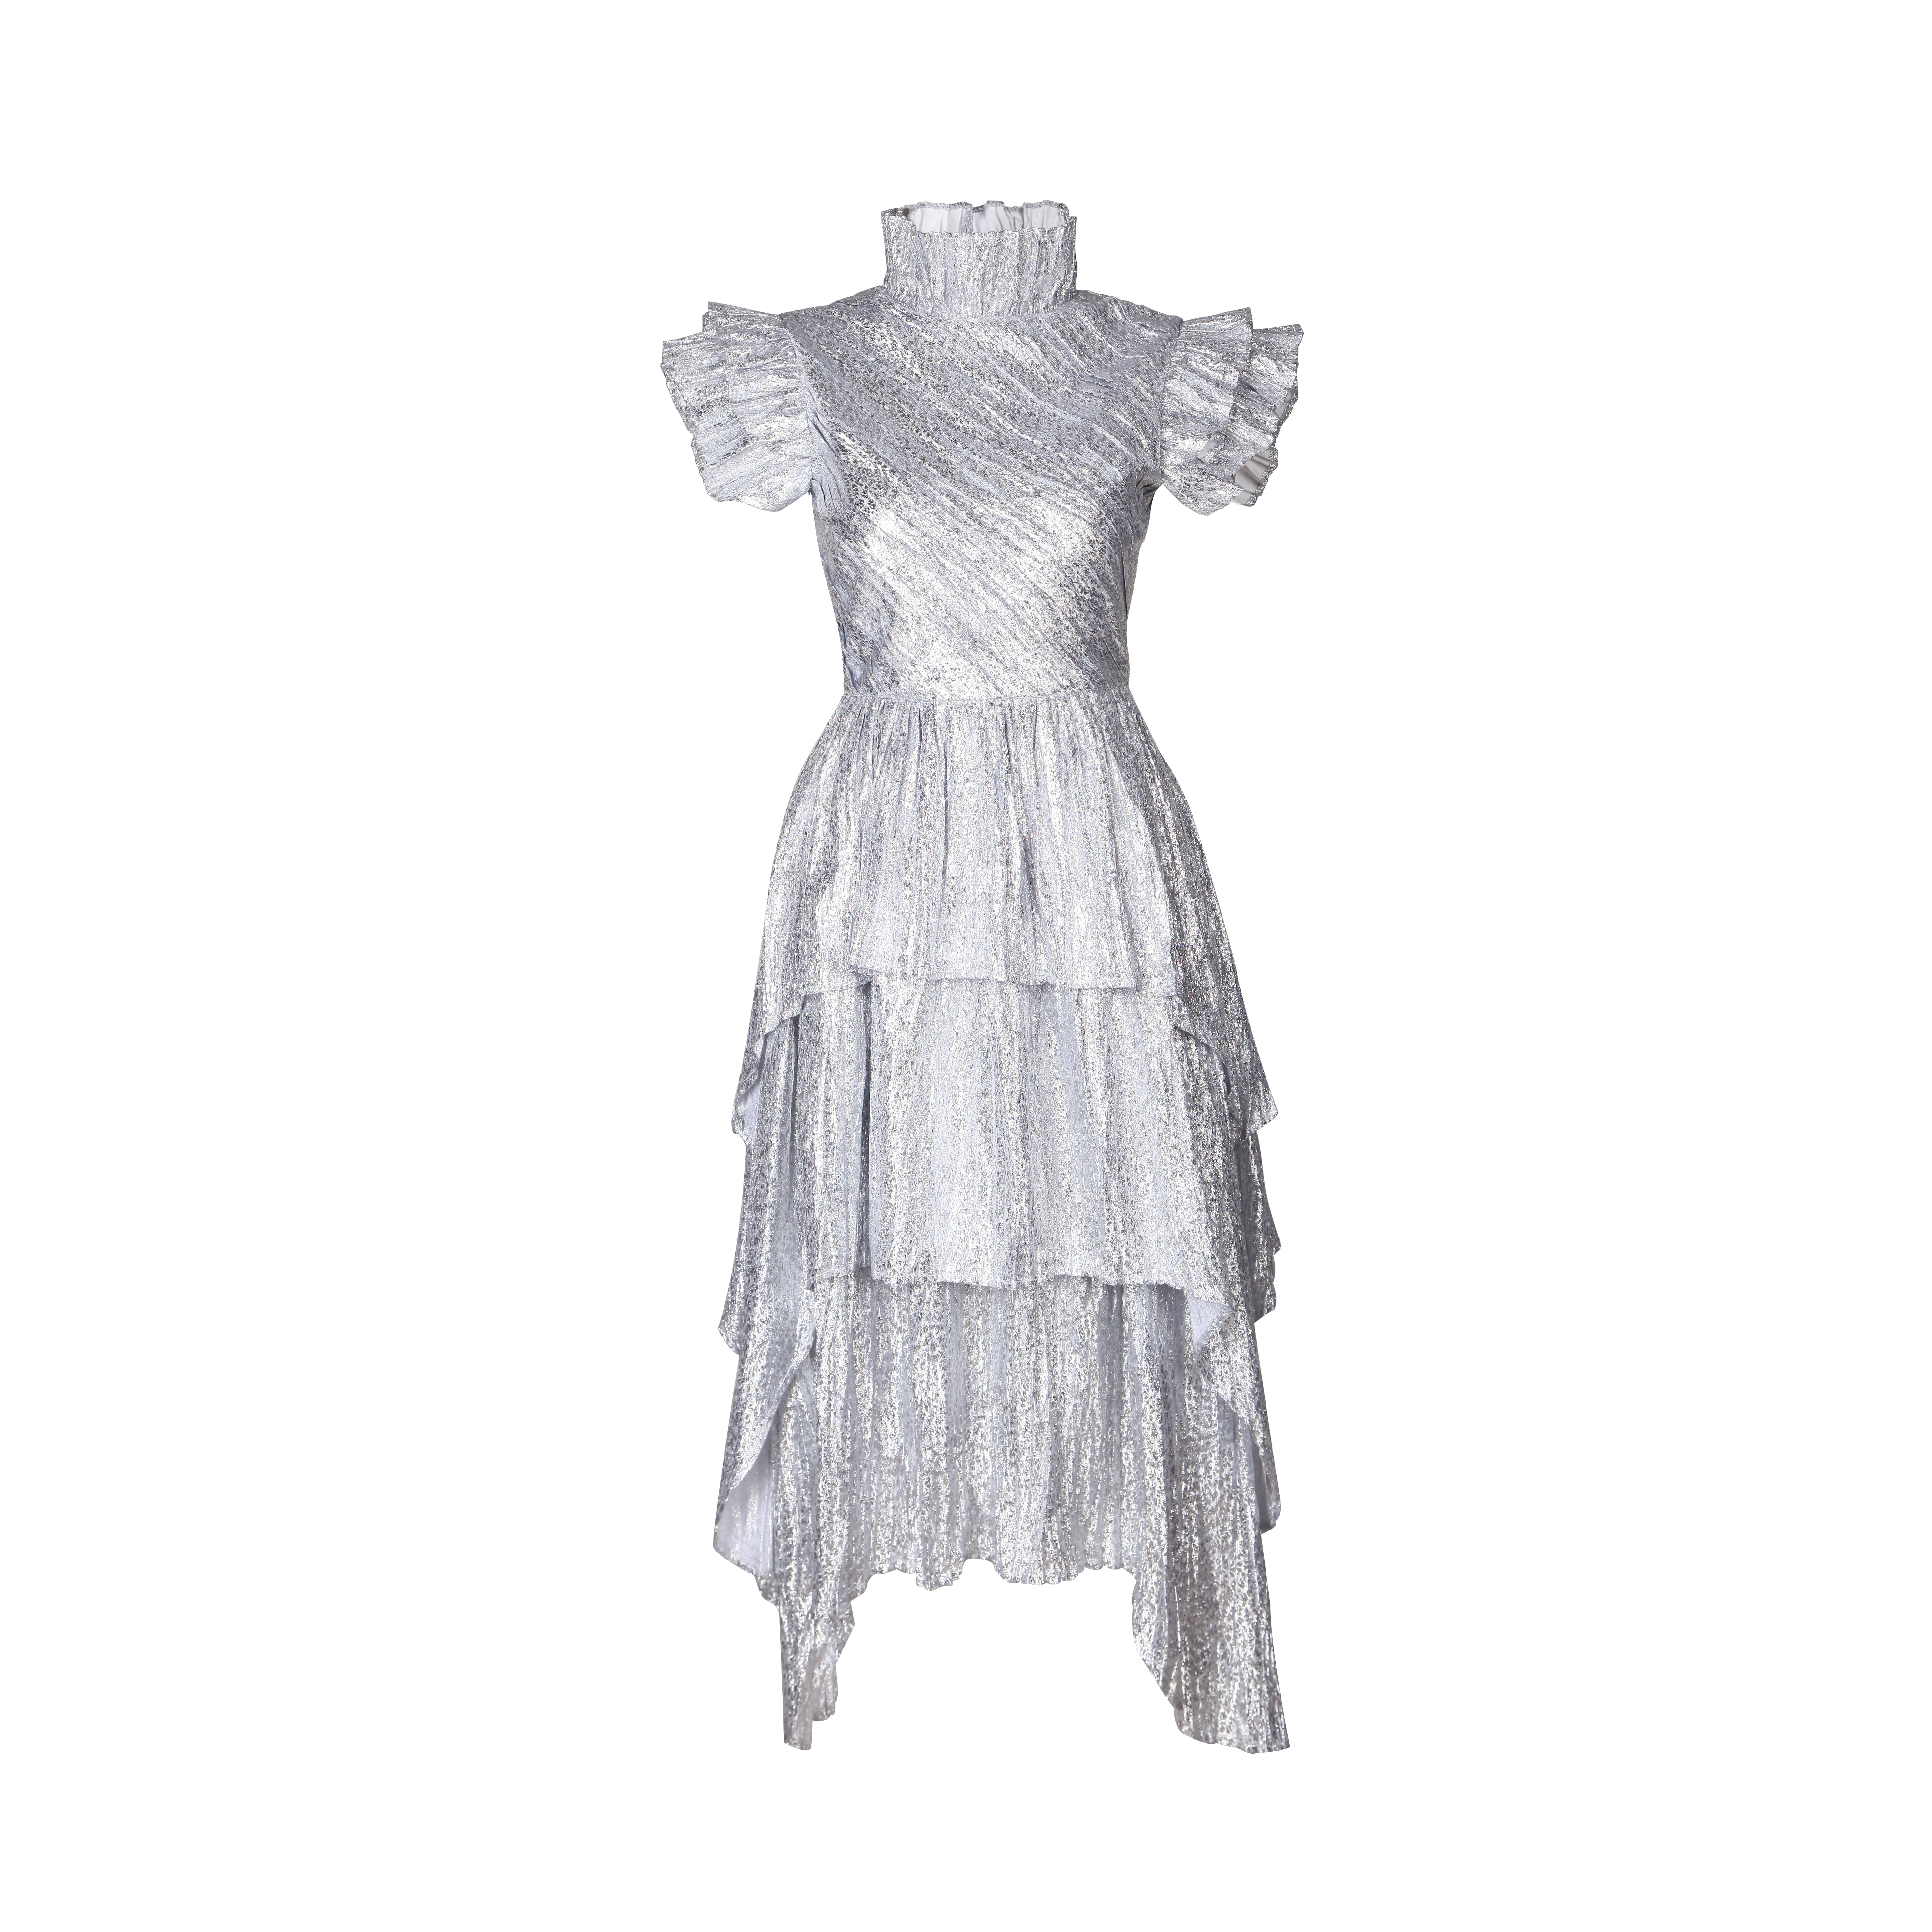 Lait Dress by Rue Agthonis on curated-crowd.com